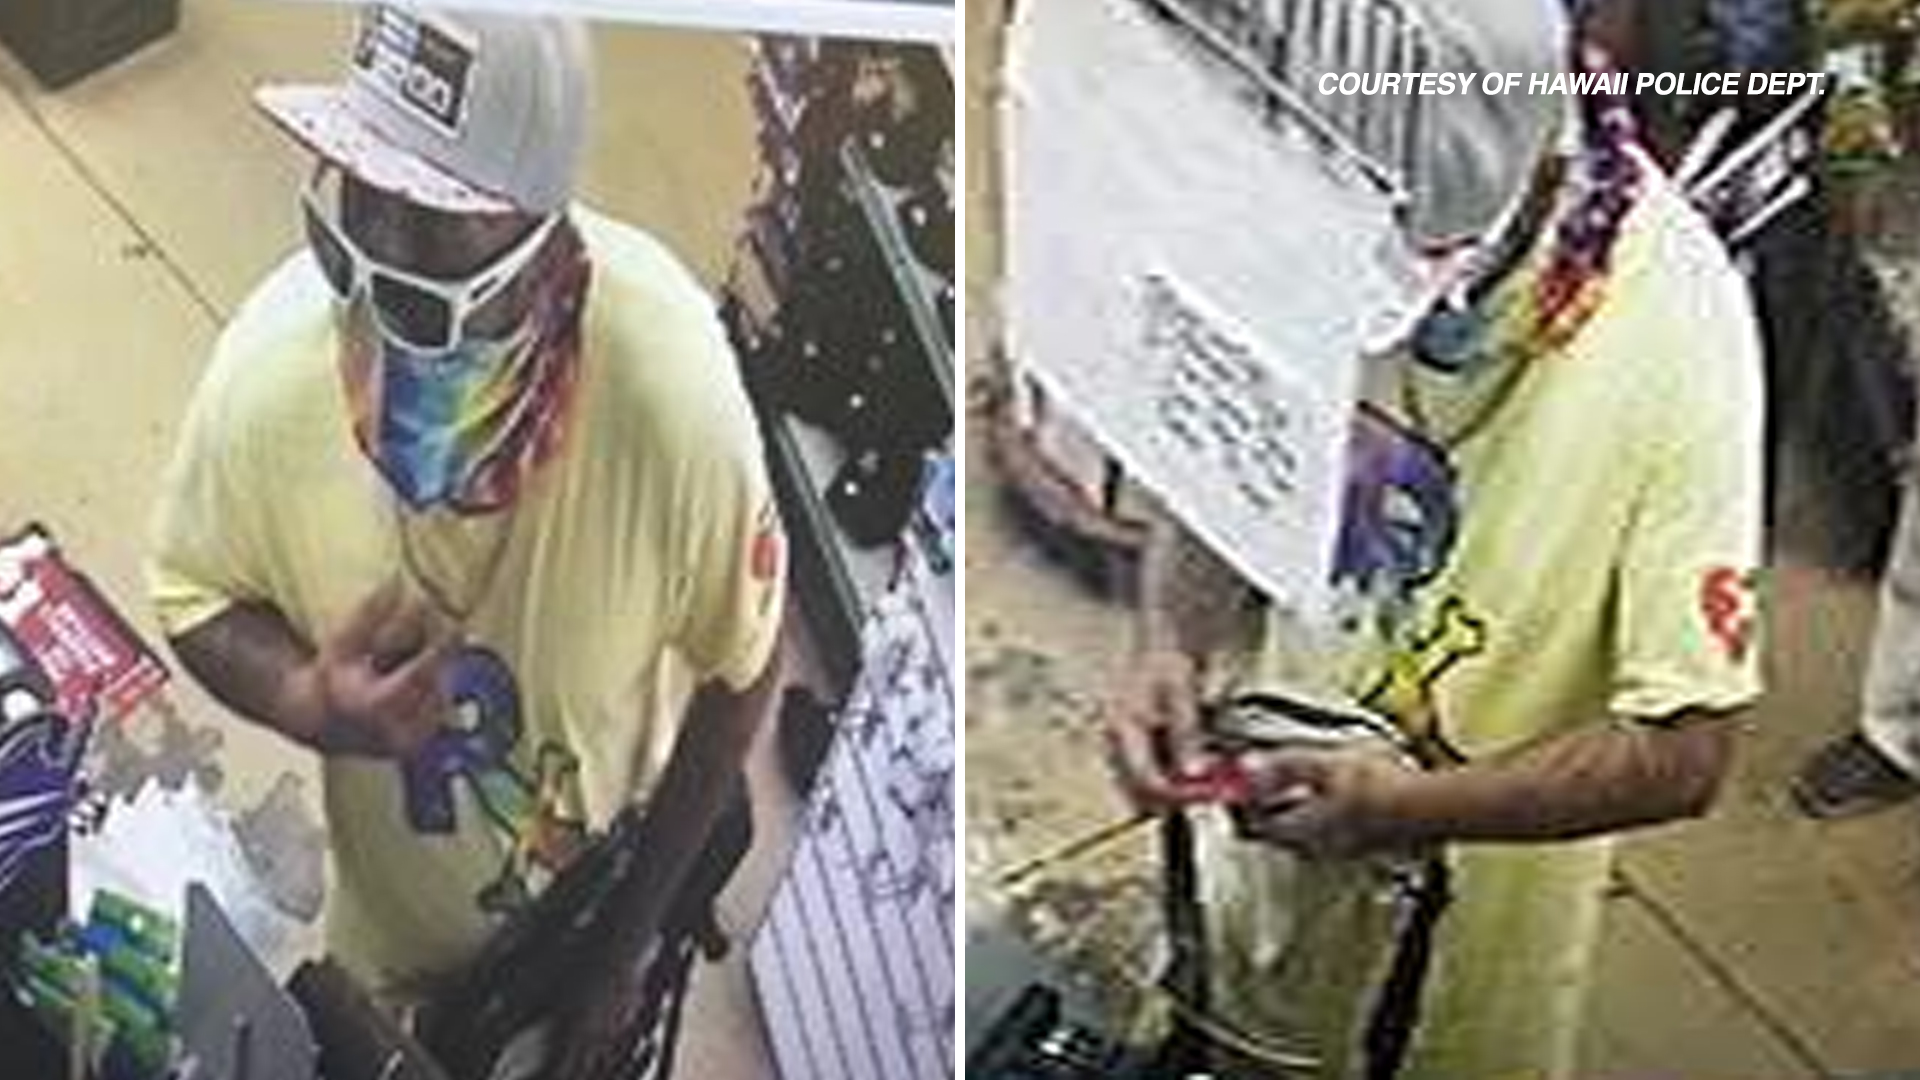 Hawaii Island Police Searching For Suspect In Credit Card Fraud Case